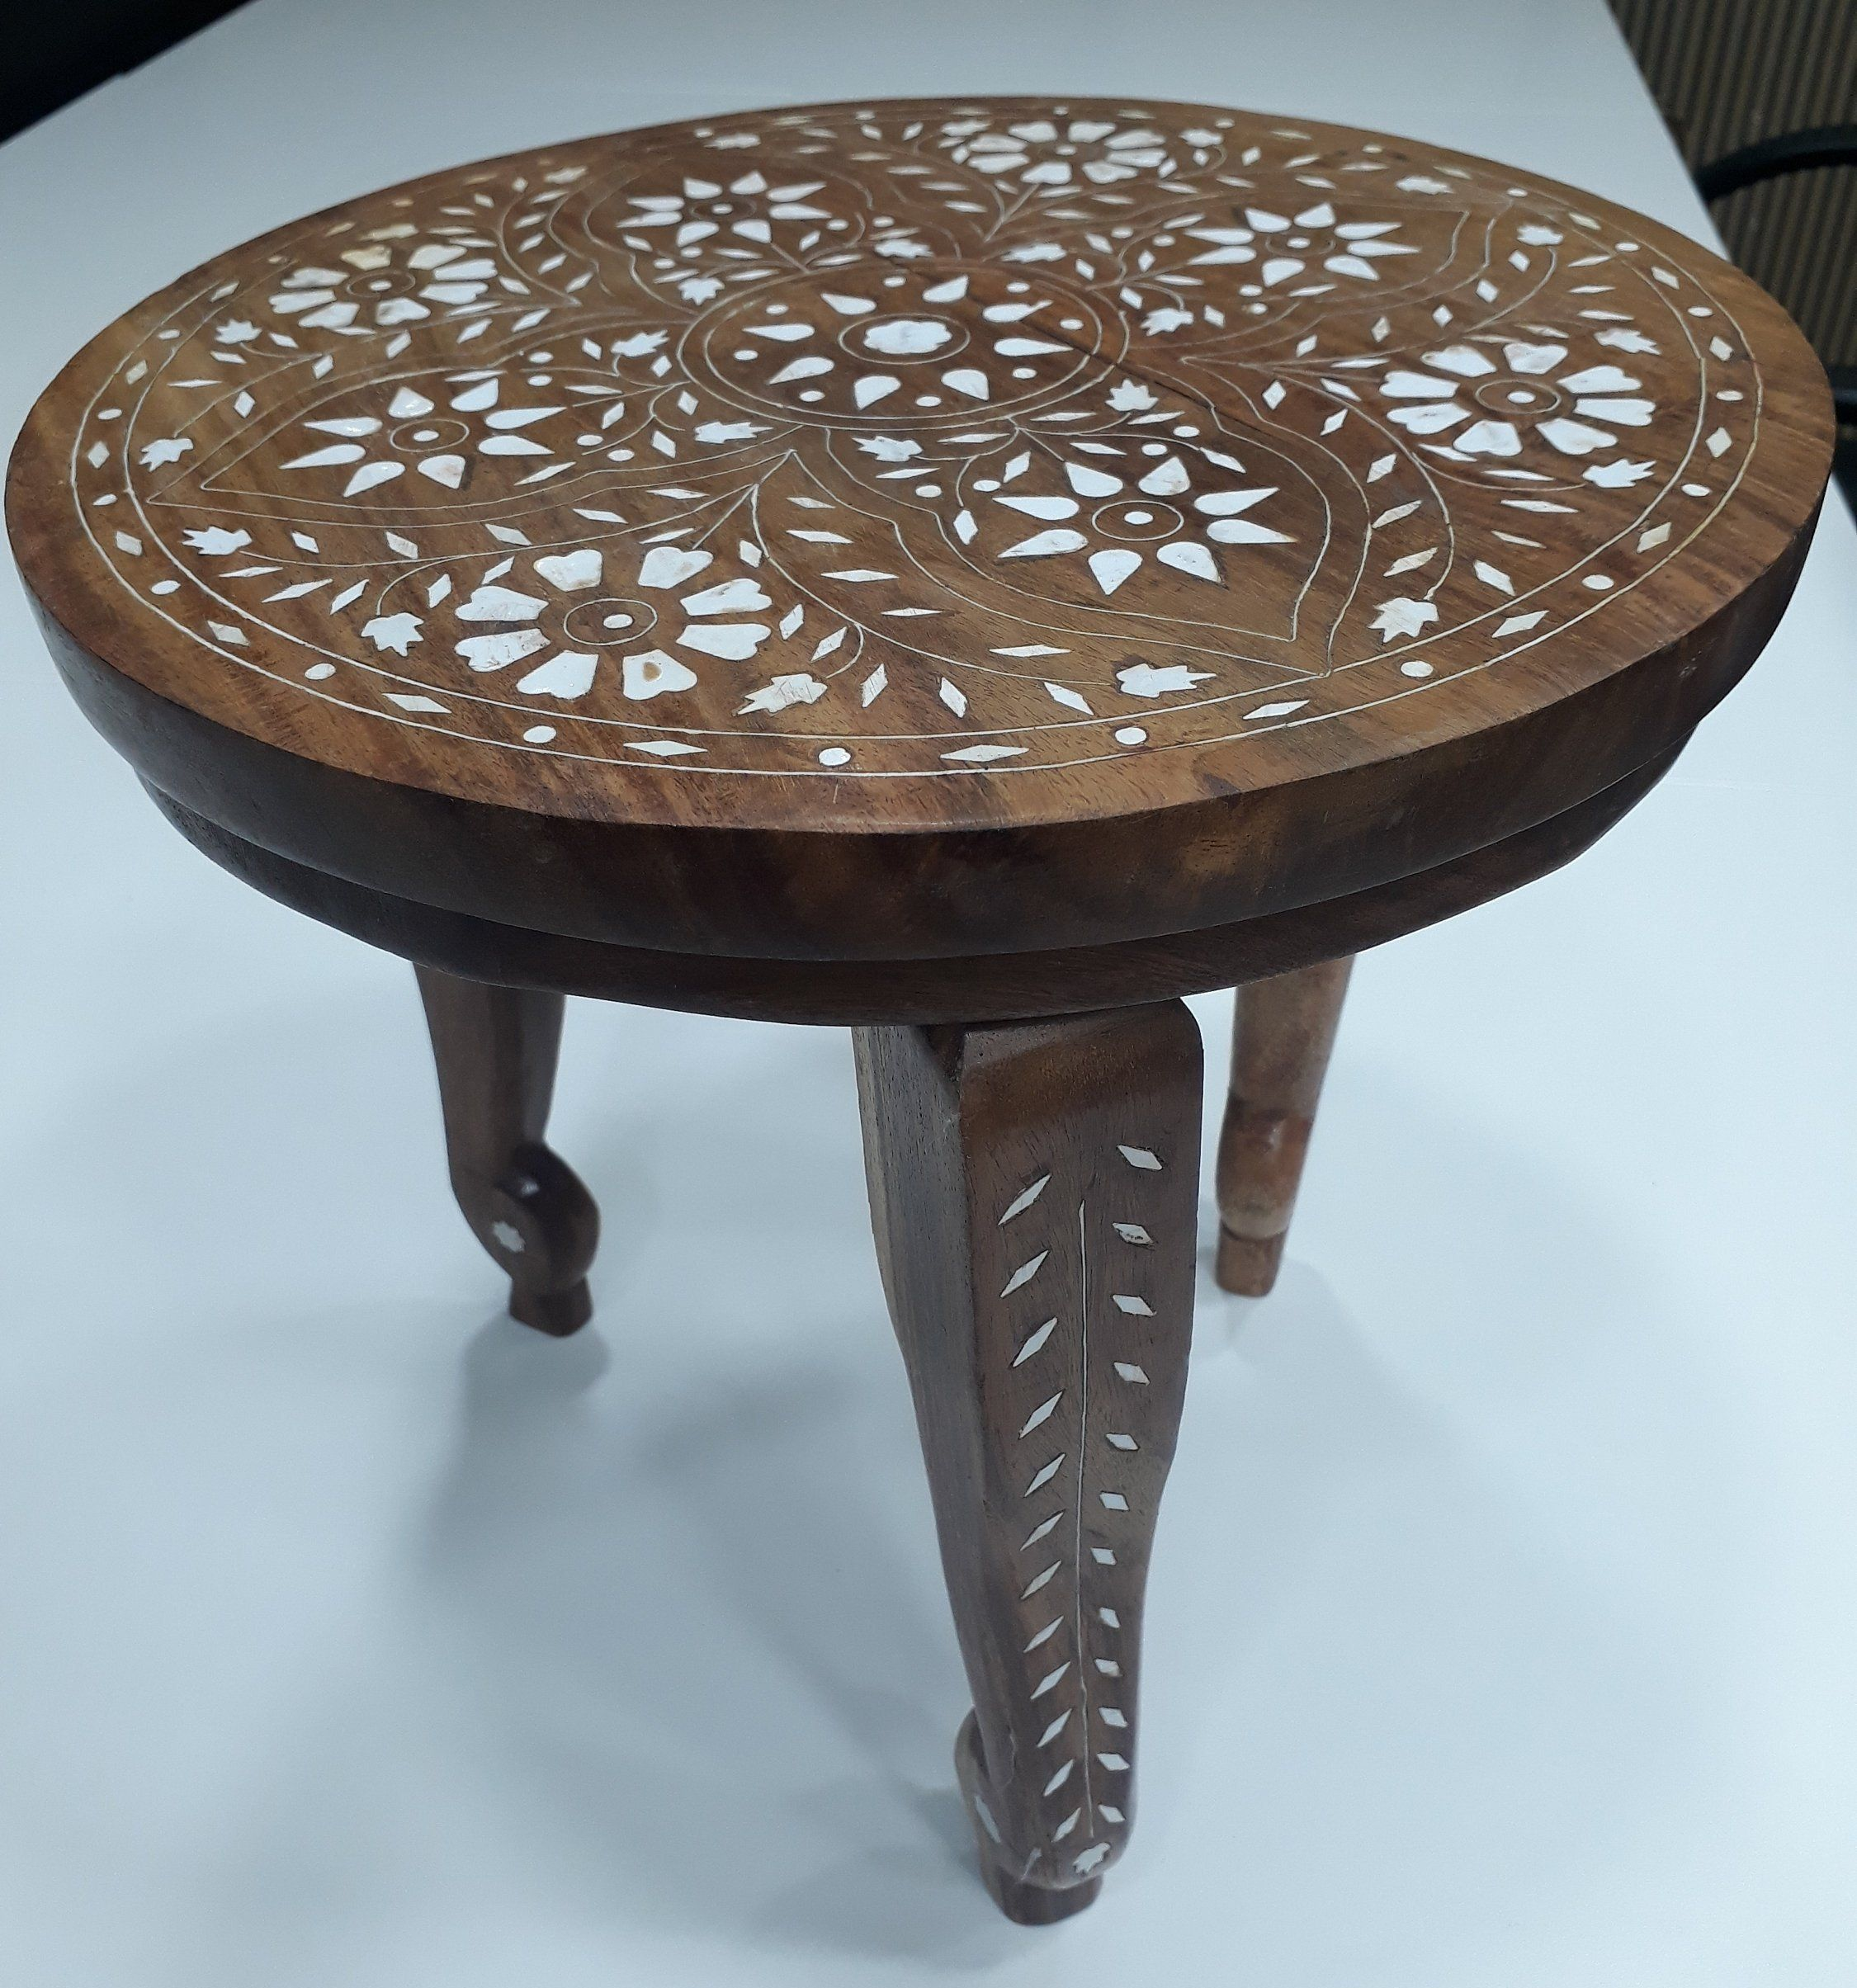 vintage table small wooden side decor end accent inlaid oriental living glass top patio dining with stools painted cabinets home interiors catalog wicker basket half circle